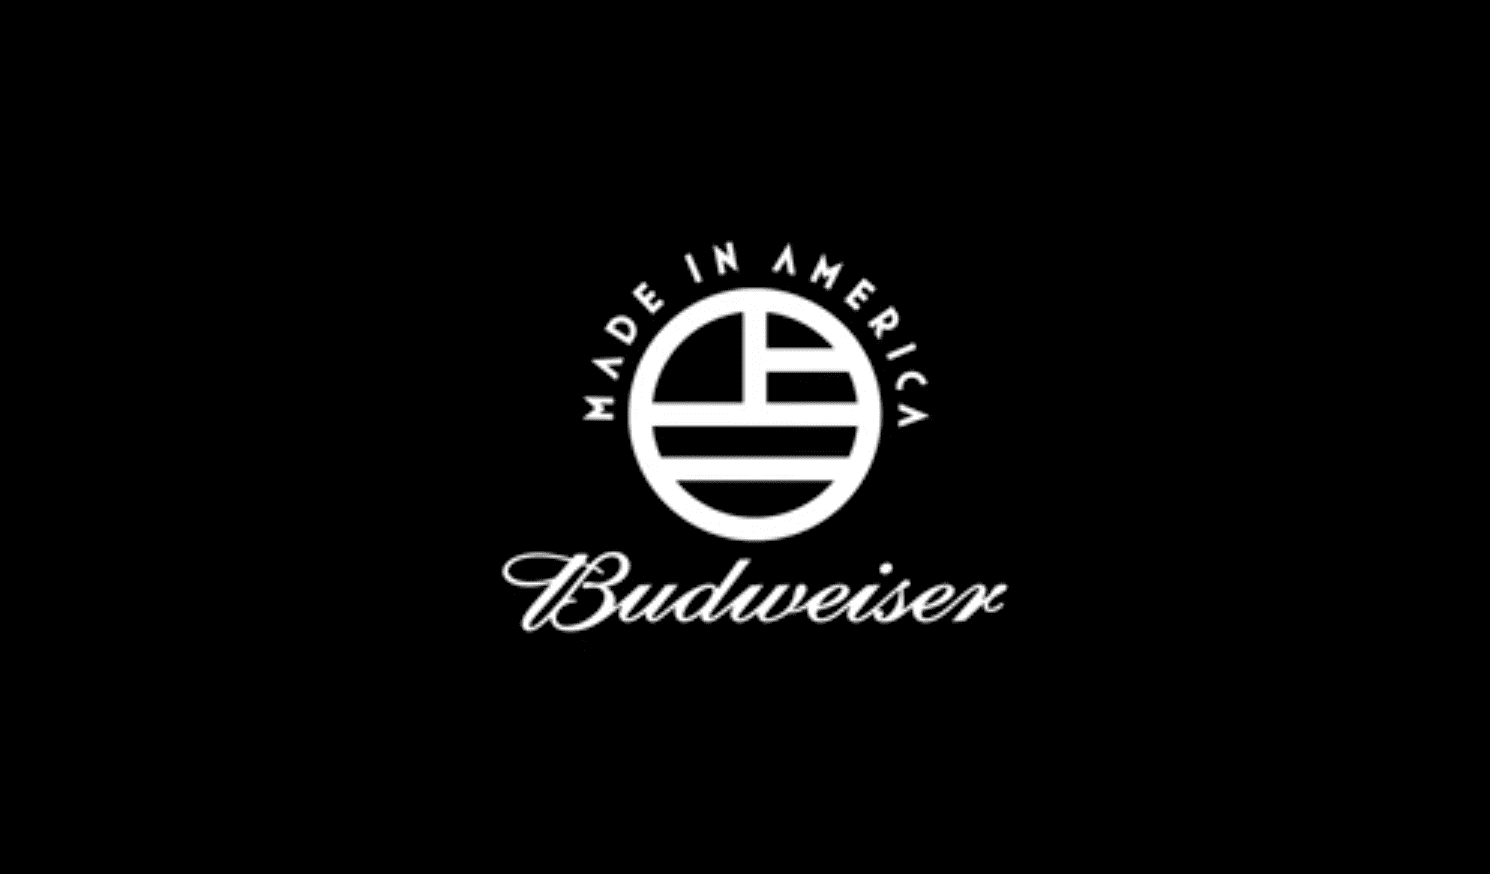 Budweiser: Made in America